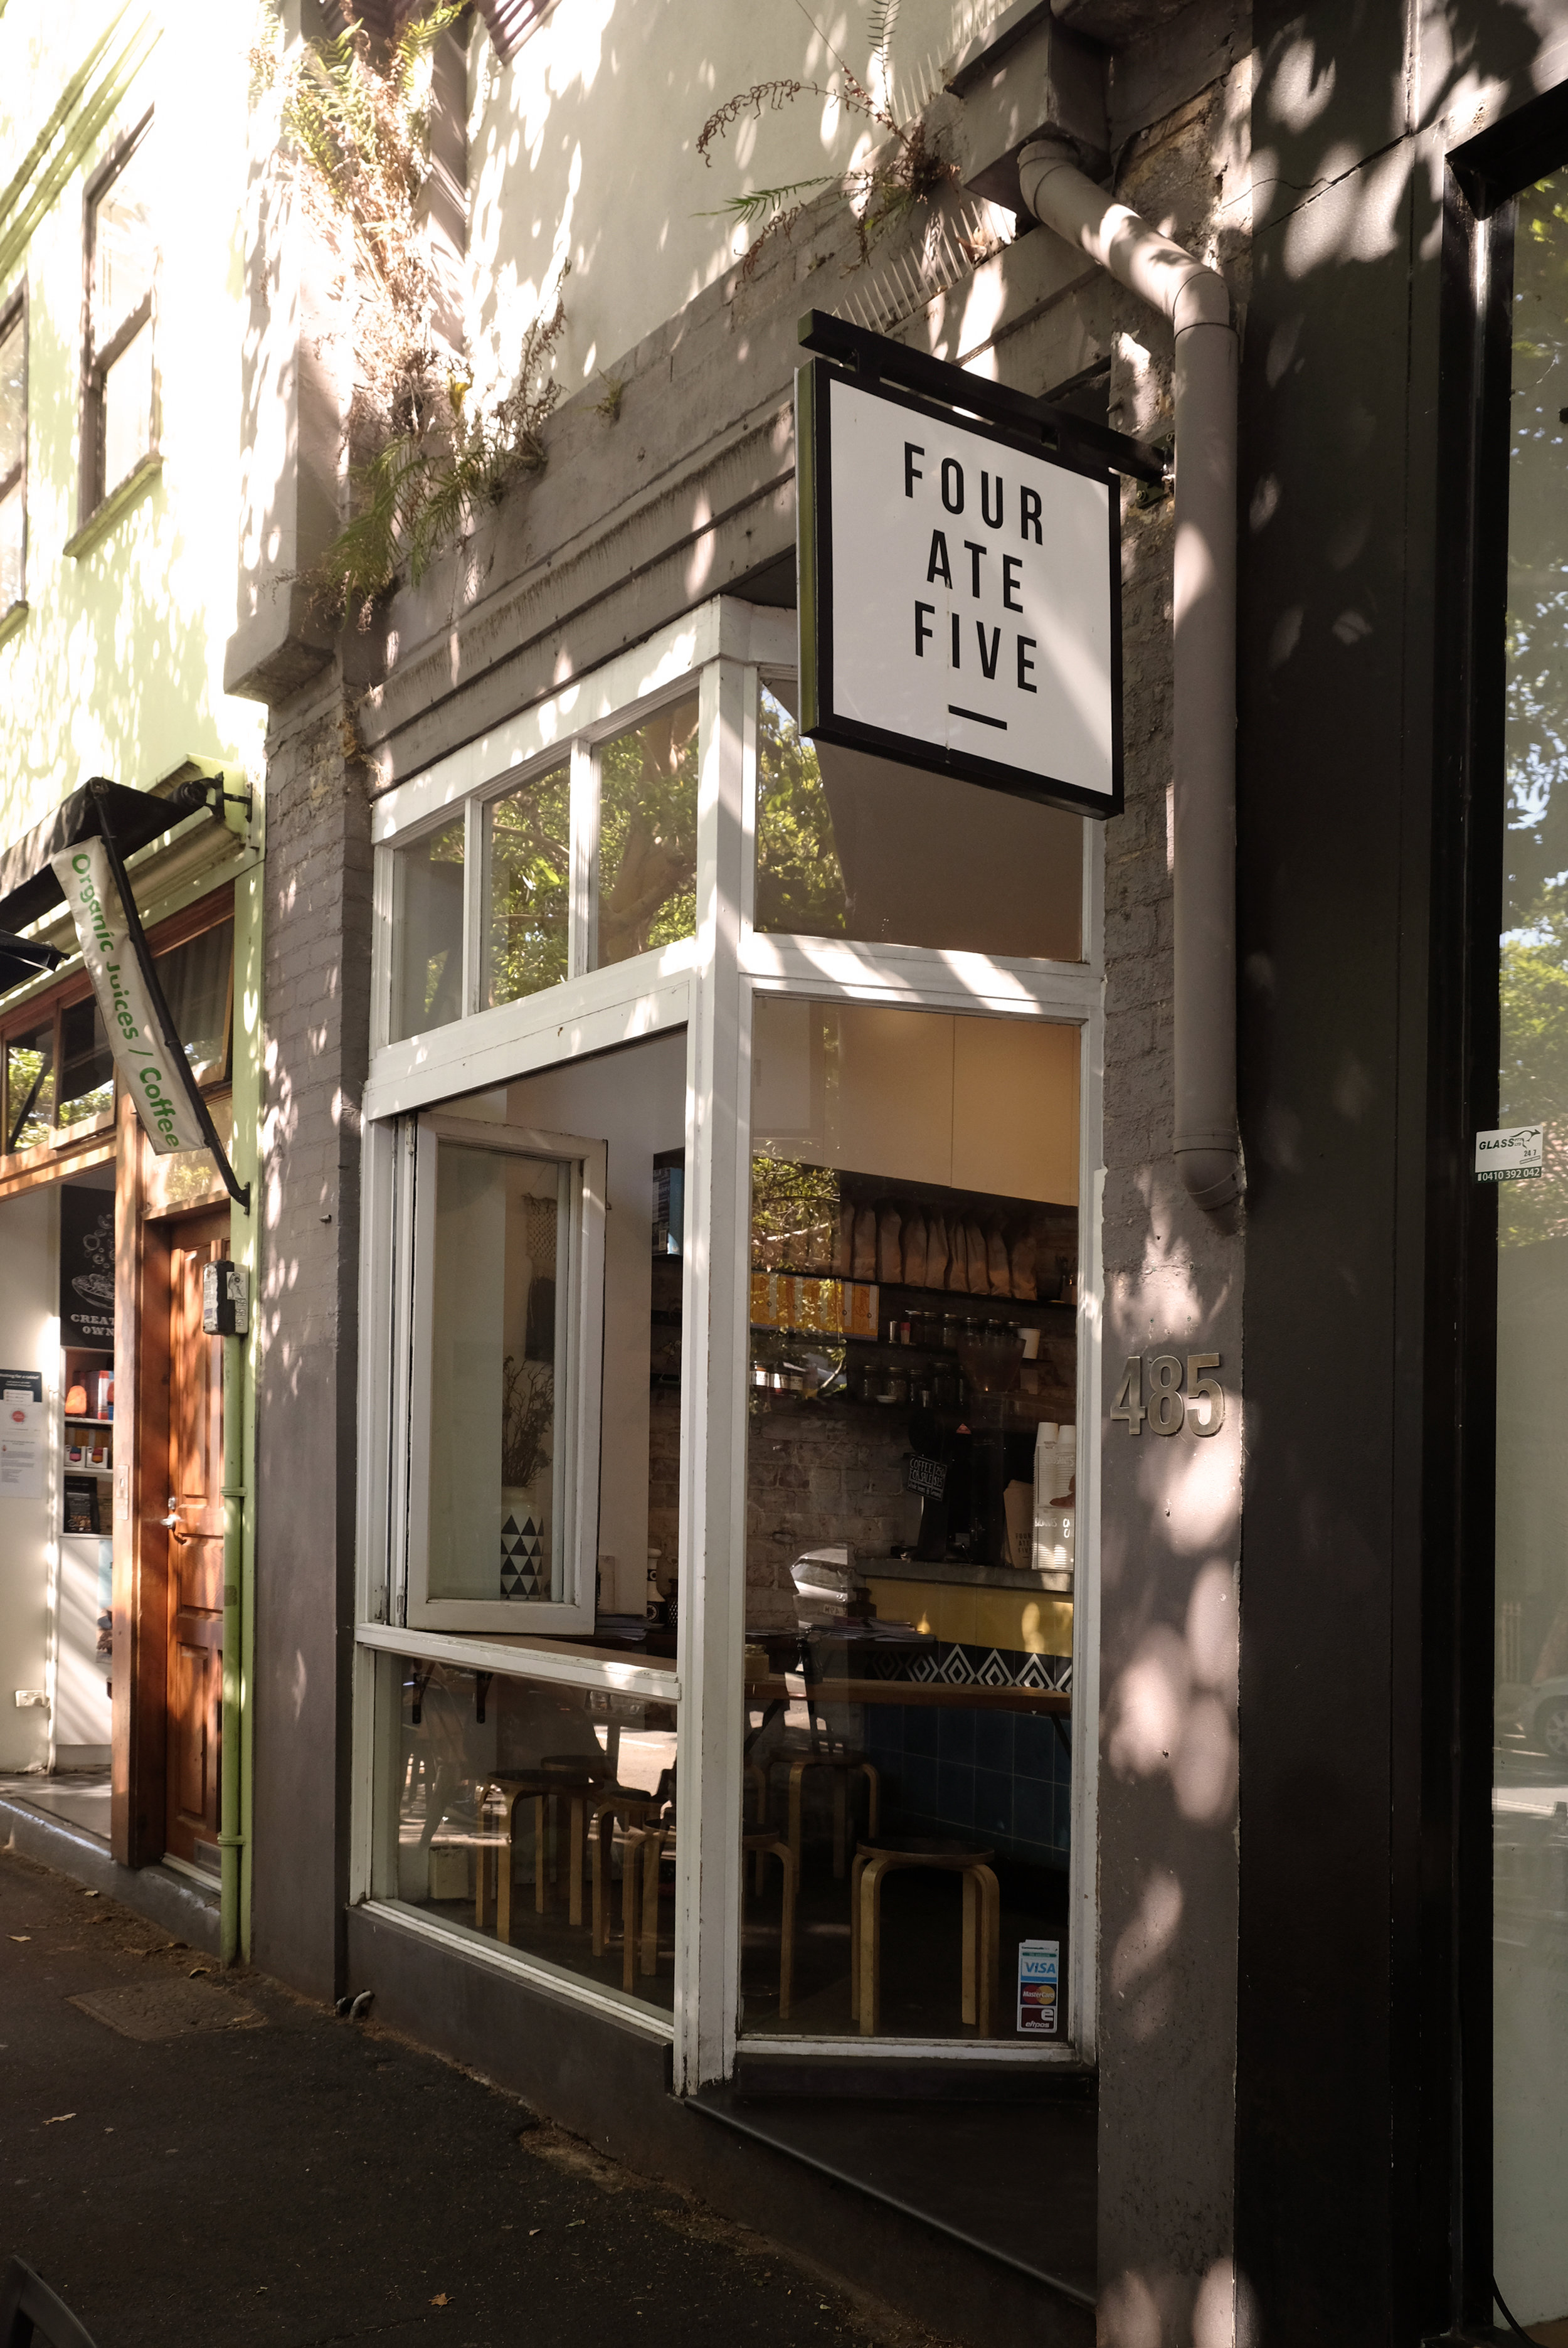 ☁︎F O U R A T E F I V E /  four.ate.five   A lovely and cosy coffee shop spotted in Surry Hills! I would love to sit along the window all day !  📍485 Crown St, Surry Hills NSW